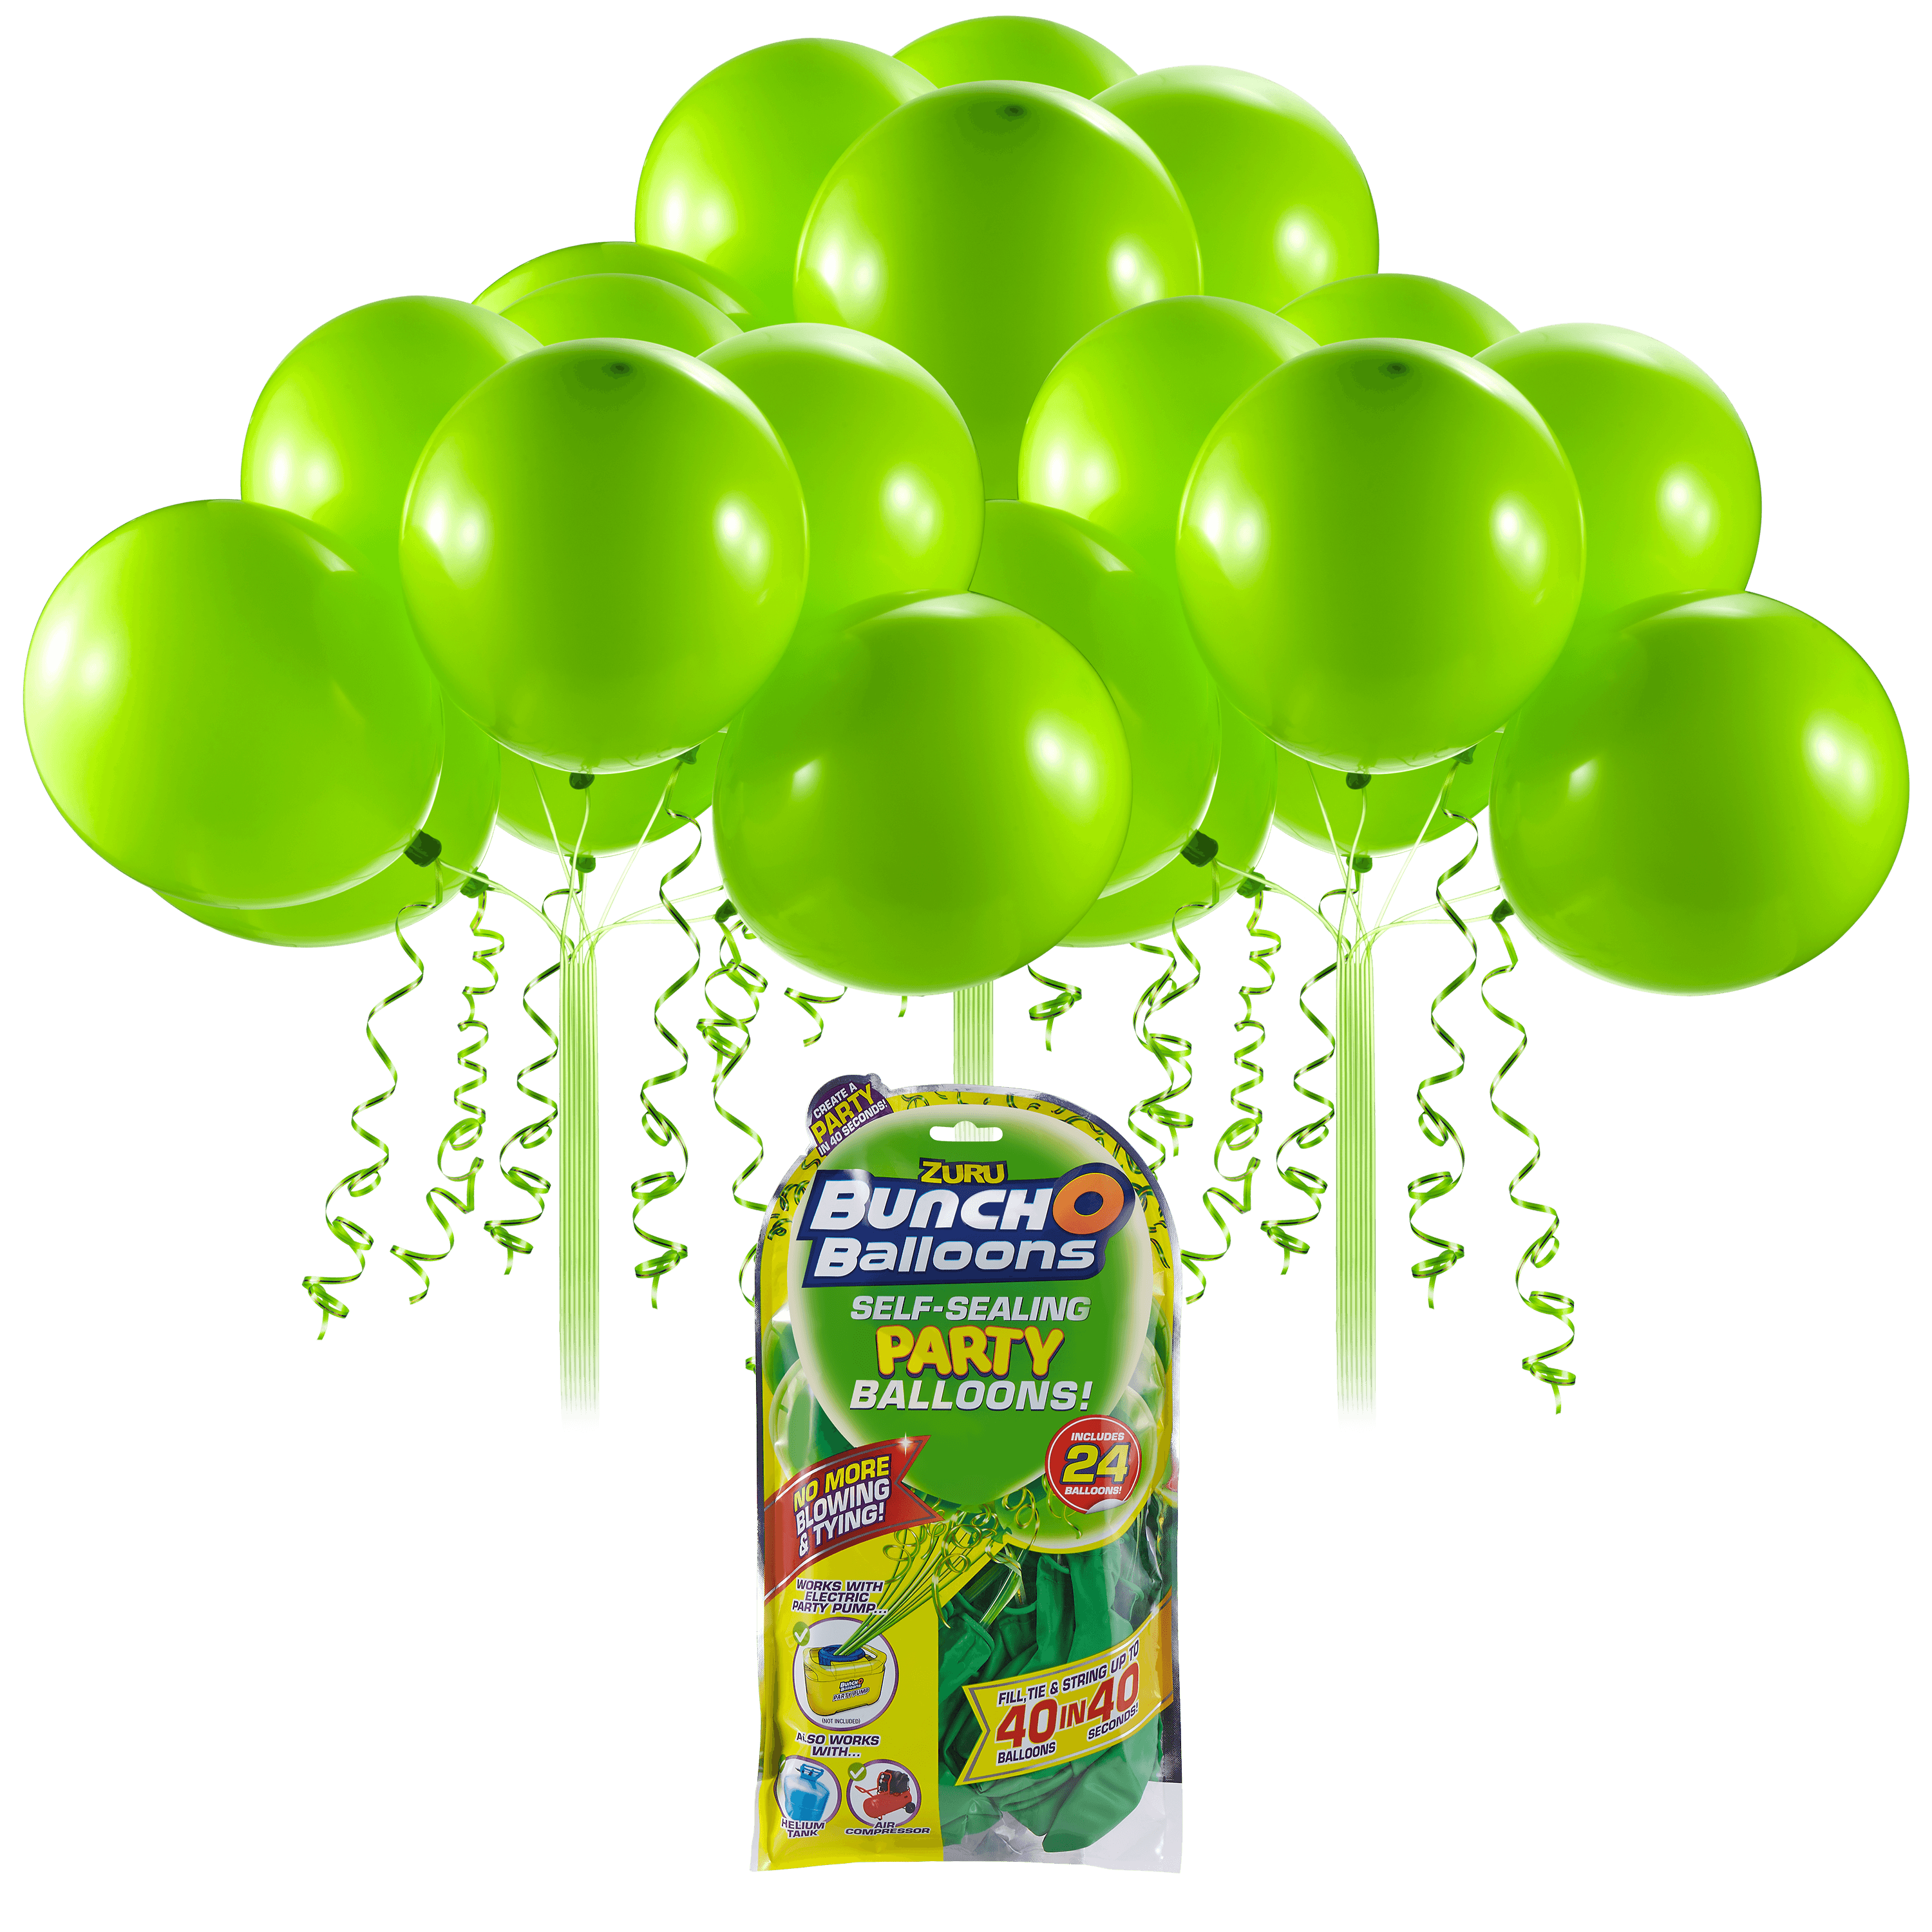 24 x White 11in Balloons by ZURU Bunch O Balloons Self-Sealing Latex Party Balloons